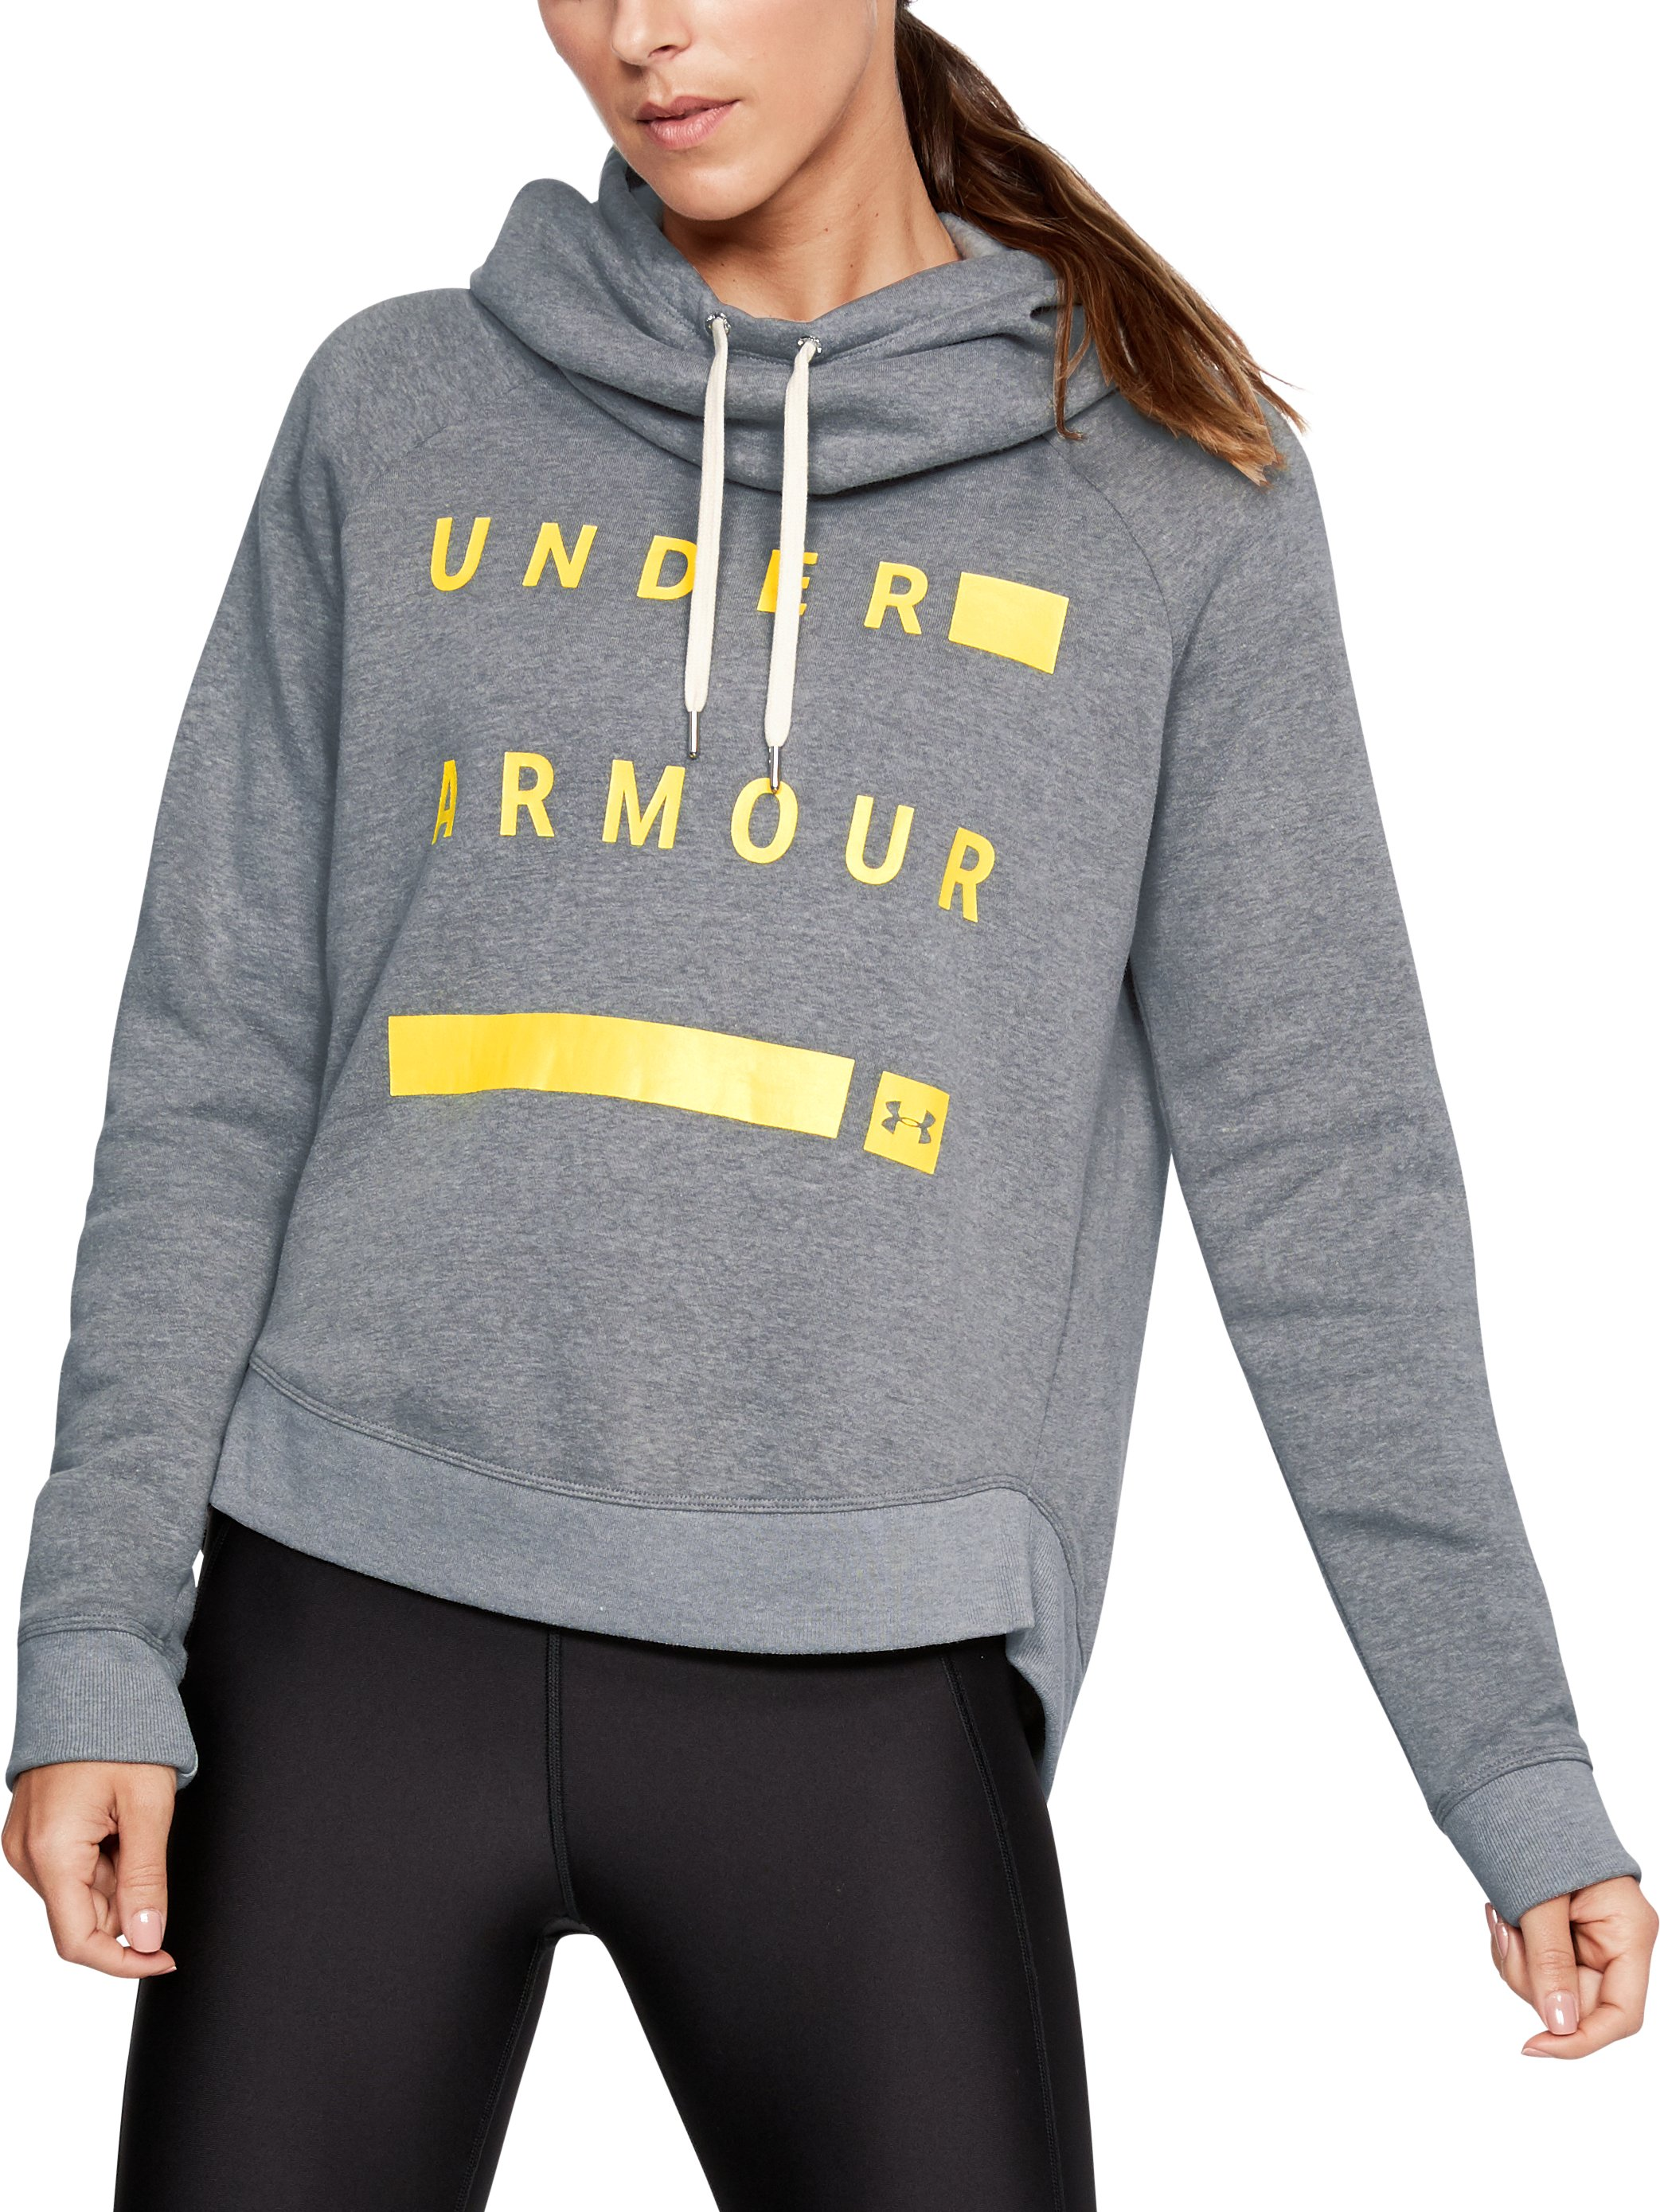 Women's UA Favorite Fleece Pullover Graphic Hoodie, STEEL LIGHT HEATHER